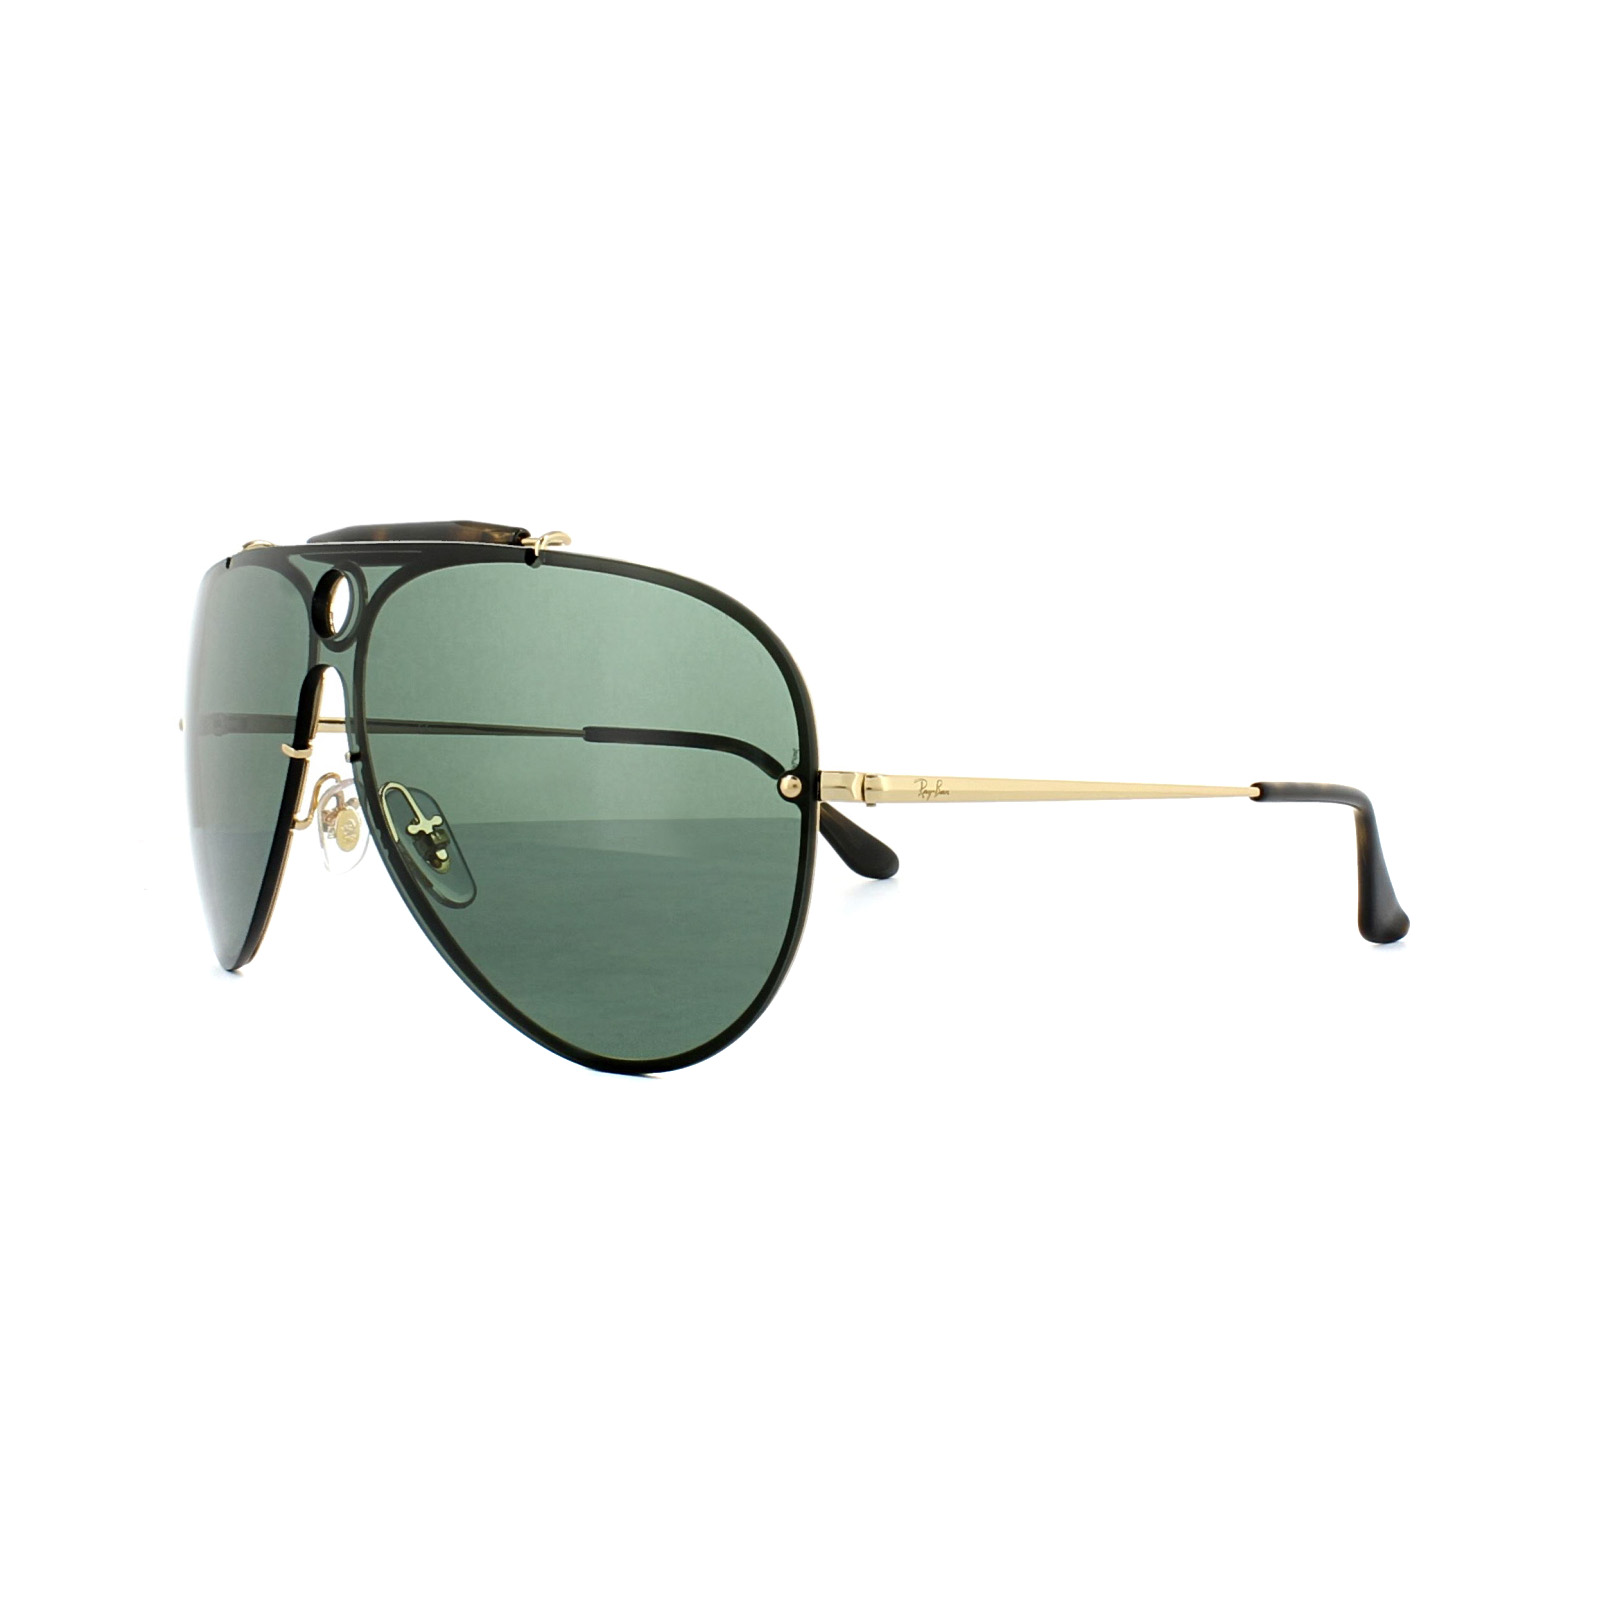 d88da29fb8be6 Sentinel Ray-Ban Sunglasses Blaze Shooter 3581N 001 71 Gold Green